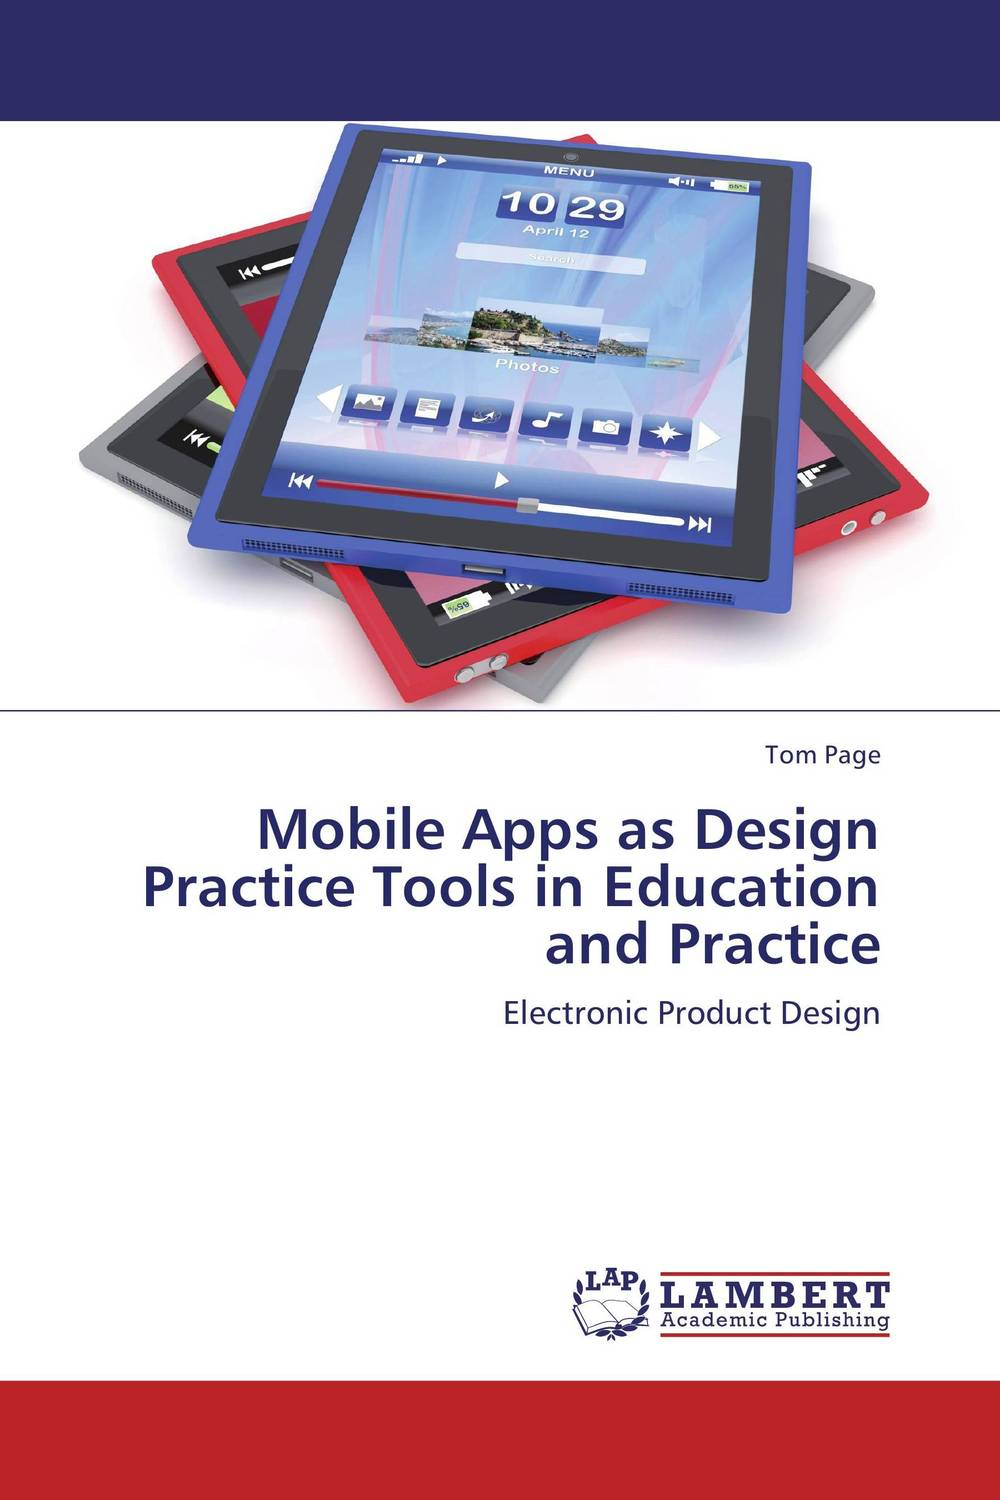 Mobile Apps as Design Practice Tools in Education and Practice the role of evaluation as a mechanism for advancing principal practice